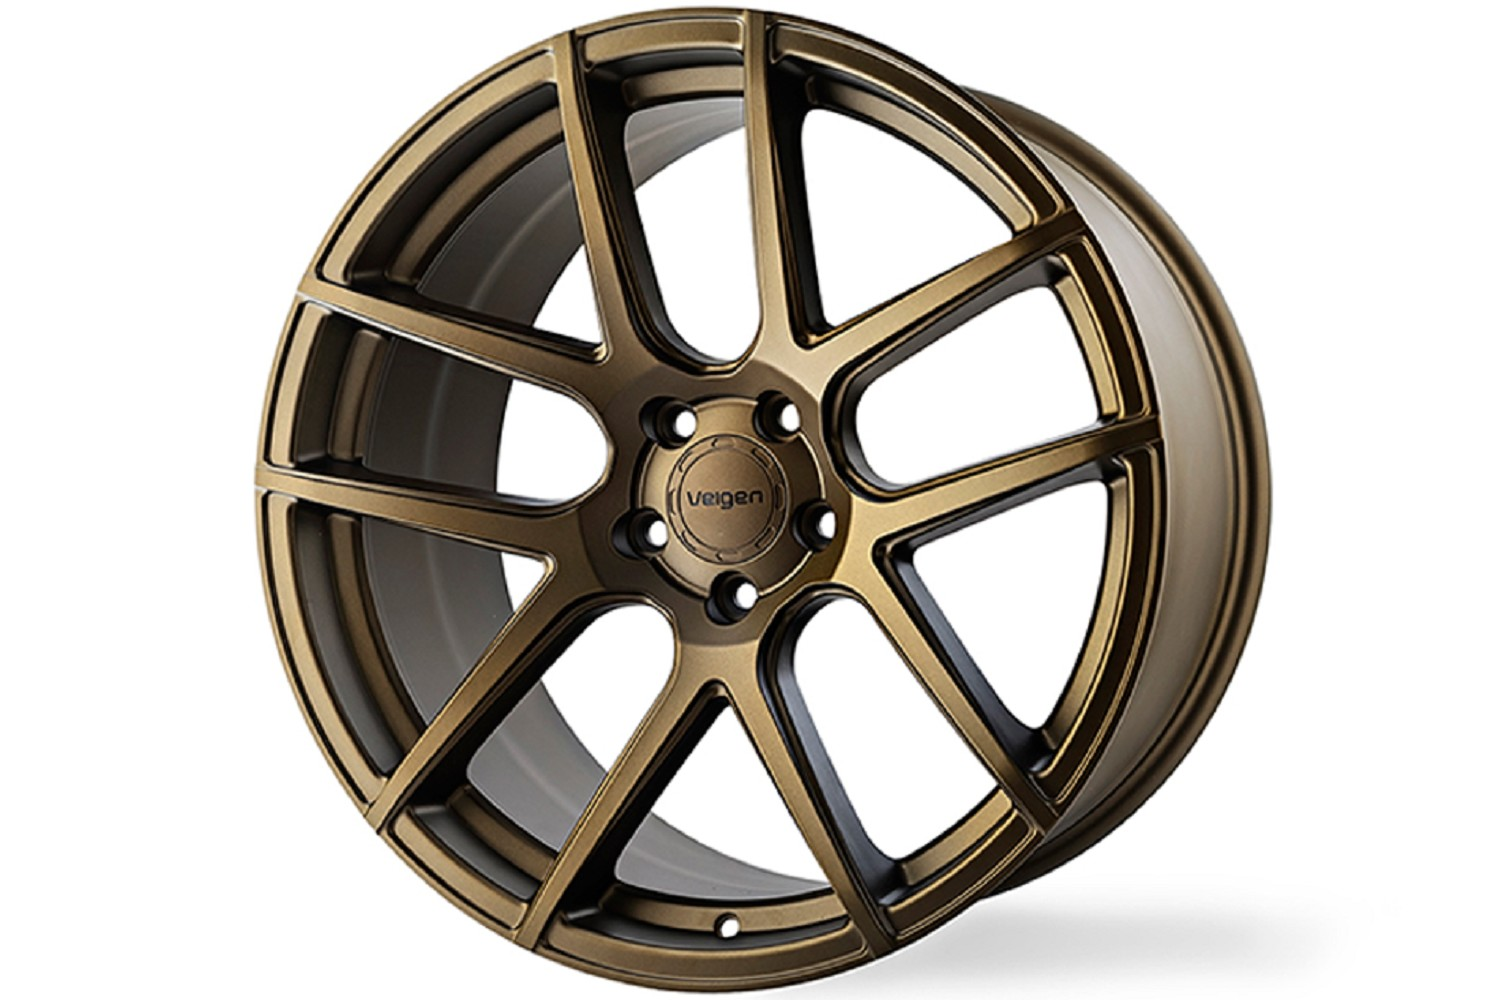 velgen wheels vmb5 satin bronze wheel 20x9 05 15 884 vmb5 209 b